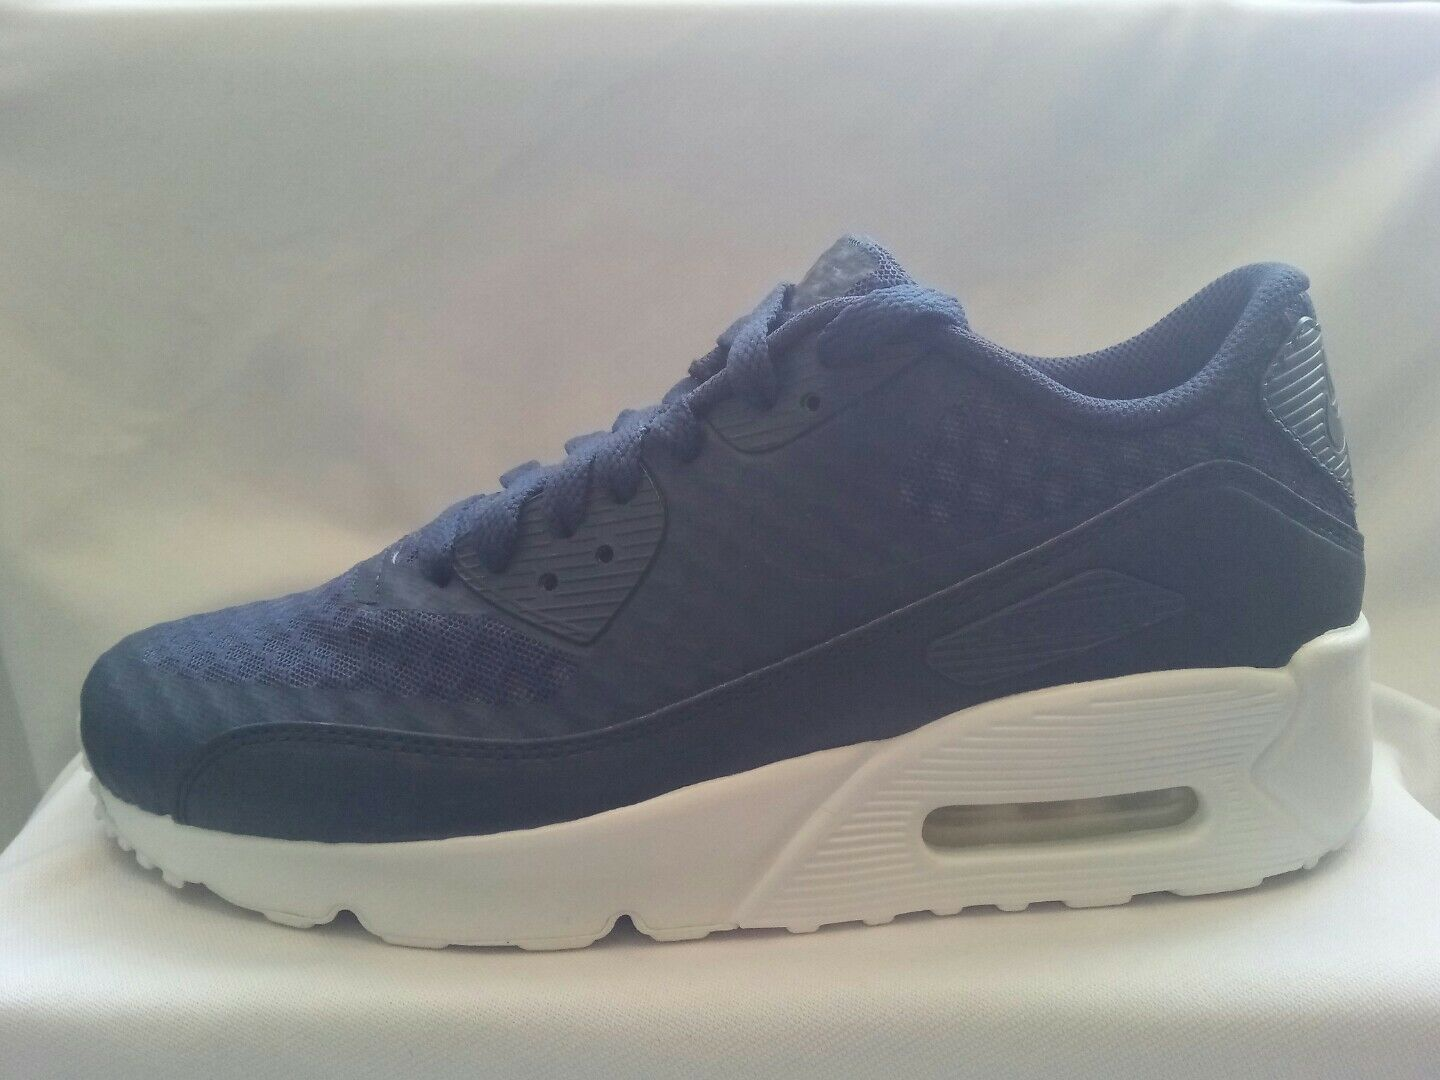 WOMENS BOYS NIKE AIR MAX 90 ULTRA 2.0 UK 5 (EUR 38) 881925 401) NAVY New